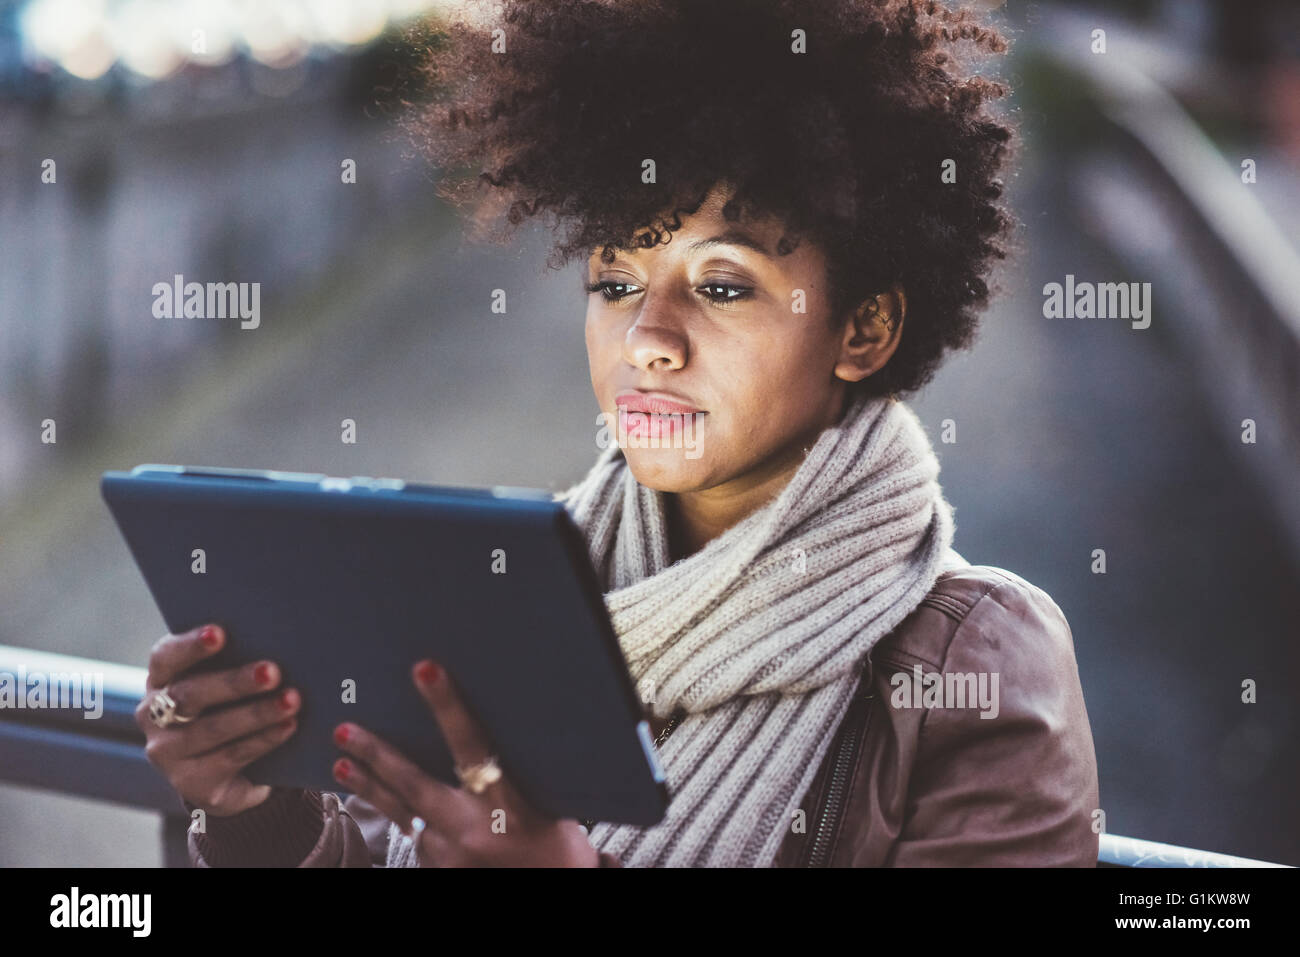 Half length of beautiful black curly hair african woman using tablet in town by night, face illuminated by screen - Stock Image